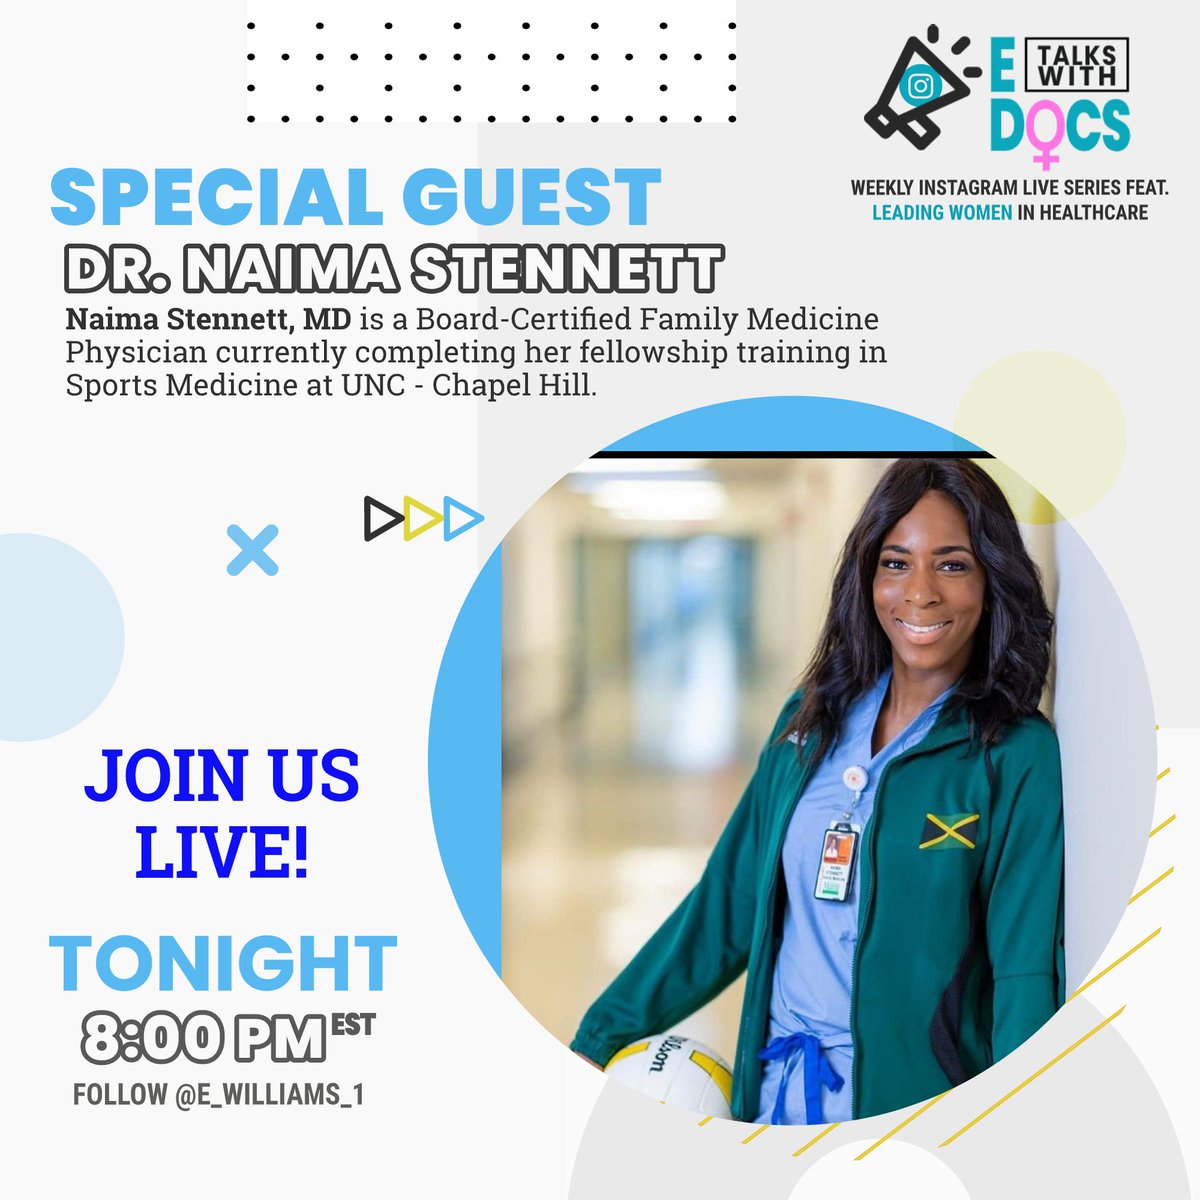 E Talks With Docs returns tonight at 8PM on IG Live! To my new followers, welcome! Dr. Stennett is a former Volleyball player of the Jamaica National Volleyball Team and NCCU Volleyball team. She's currently a Sports Medicine Fellow at UNC! Reply with questions! #ETalksWithDocs https://t.co/5EUhLhXkPW